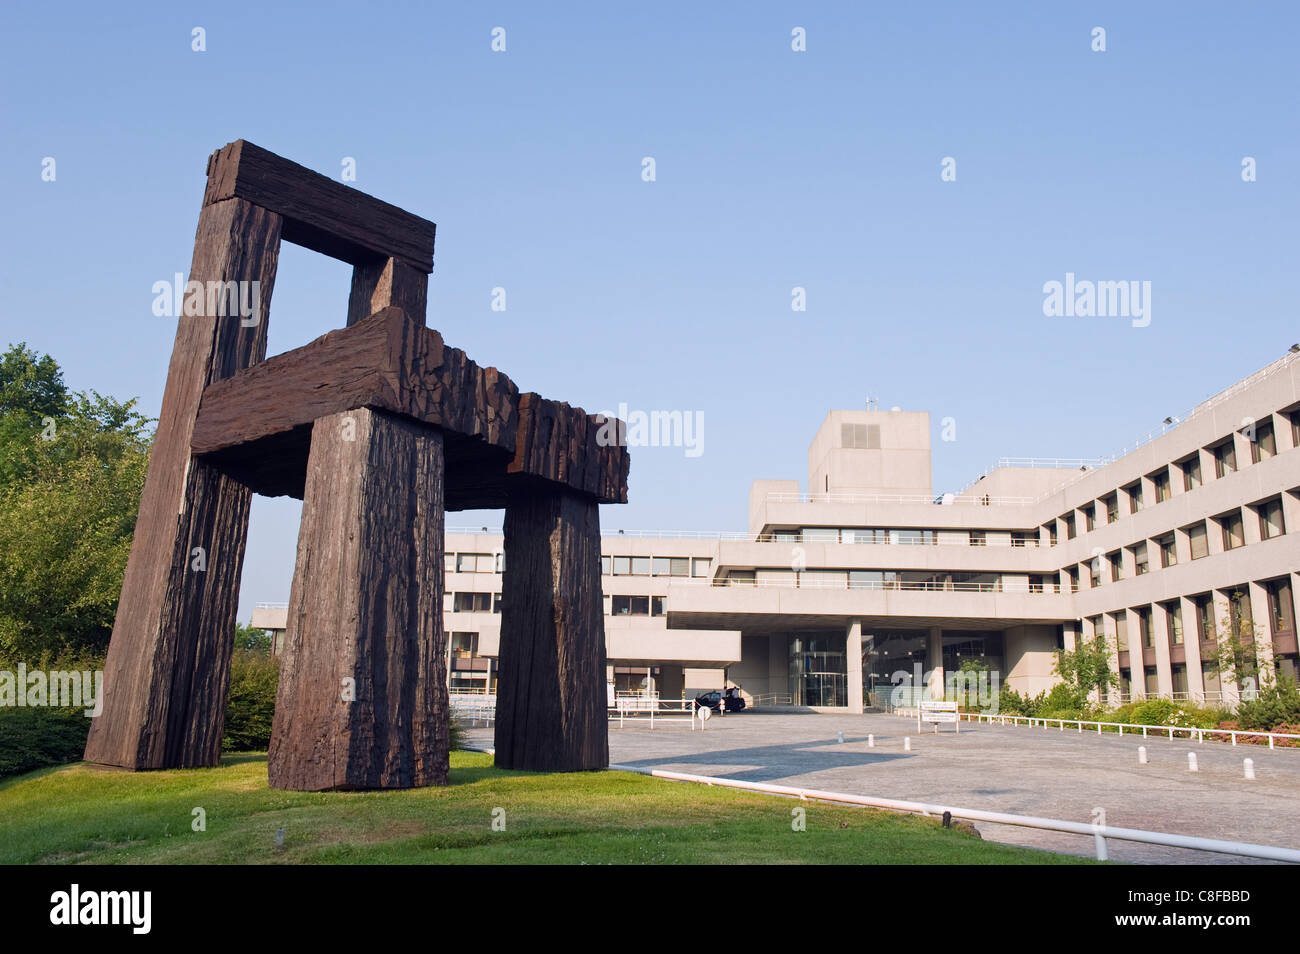 Chair art, modern architecture of the EU district on Kirchberg Plateau, Luxembourg City, Grand Duchy of Luxembourg - Stock Image